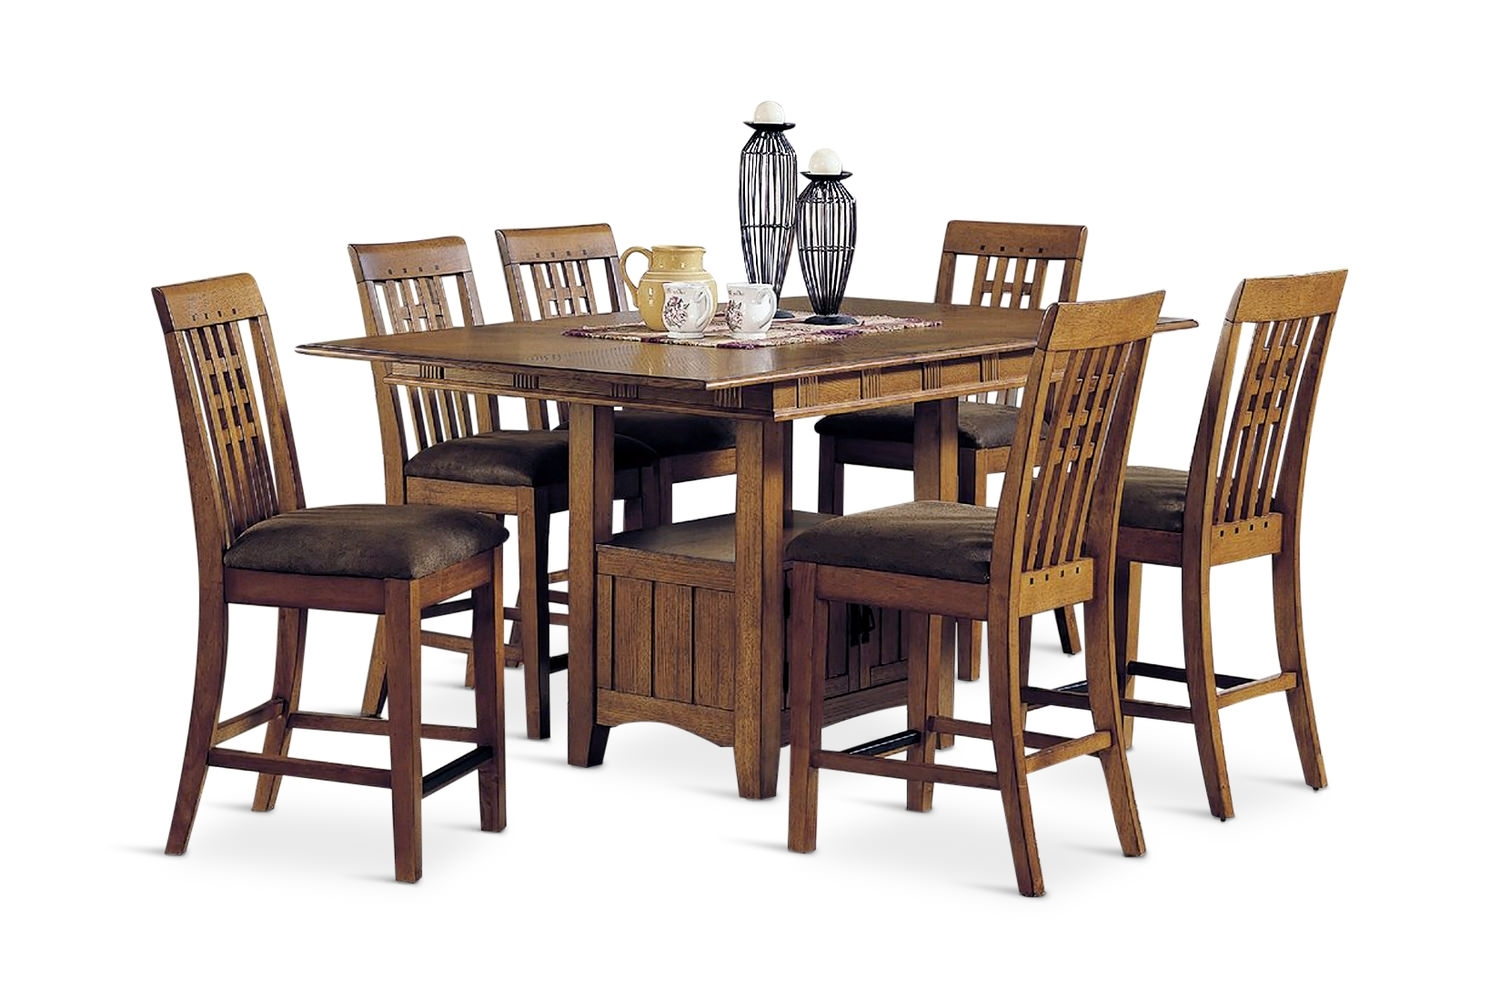 Dining Sets – Kitchen & Dining Room Sets – Hom Furniture Within Newest Craftsman 5 Piece Round Dining Sets With Side Chairs (Image 10 of 20)